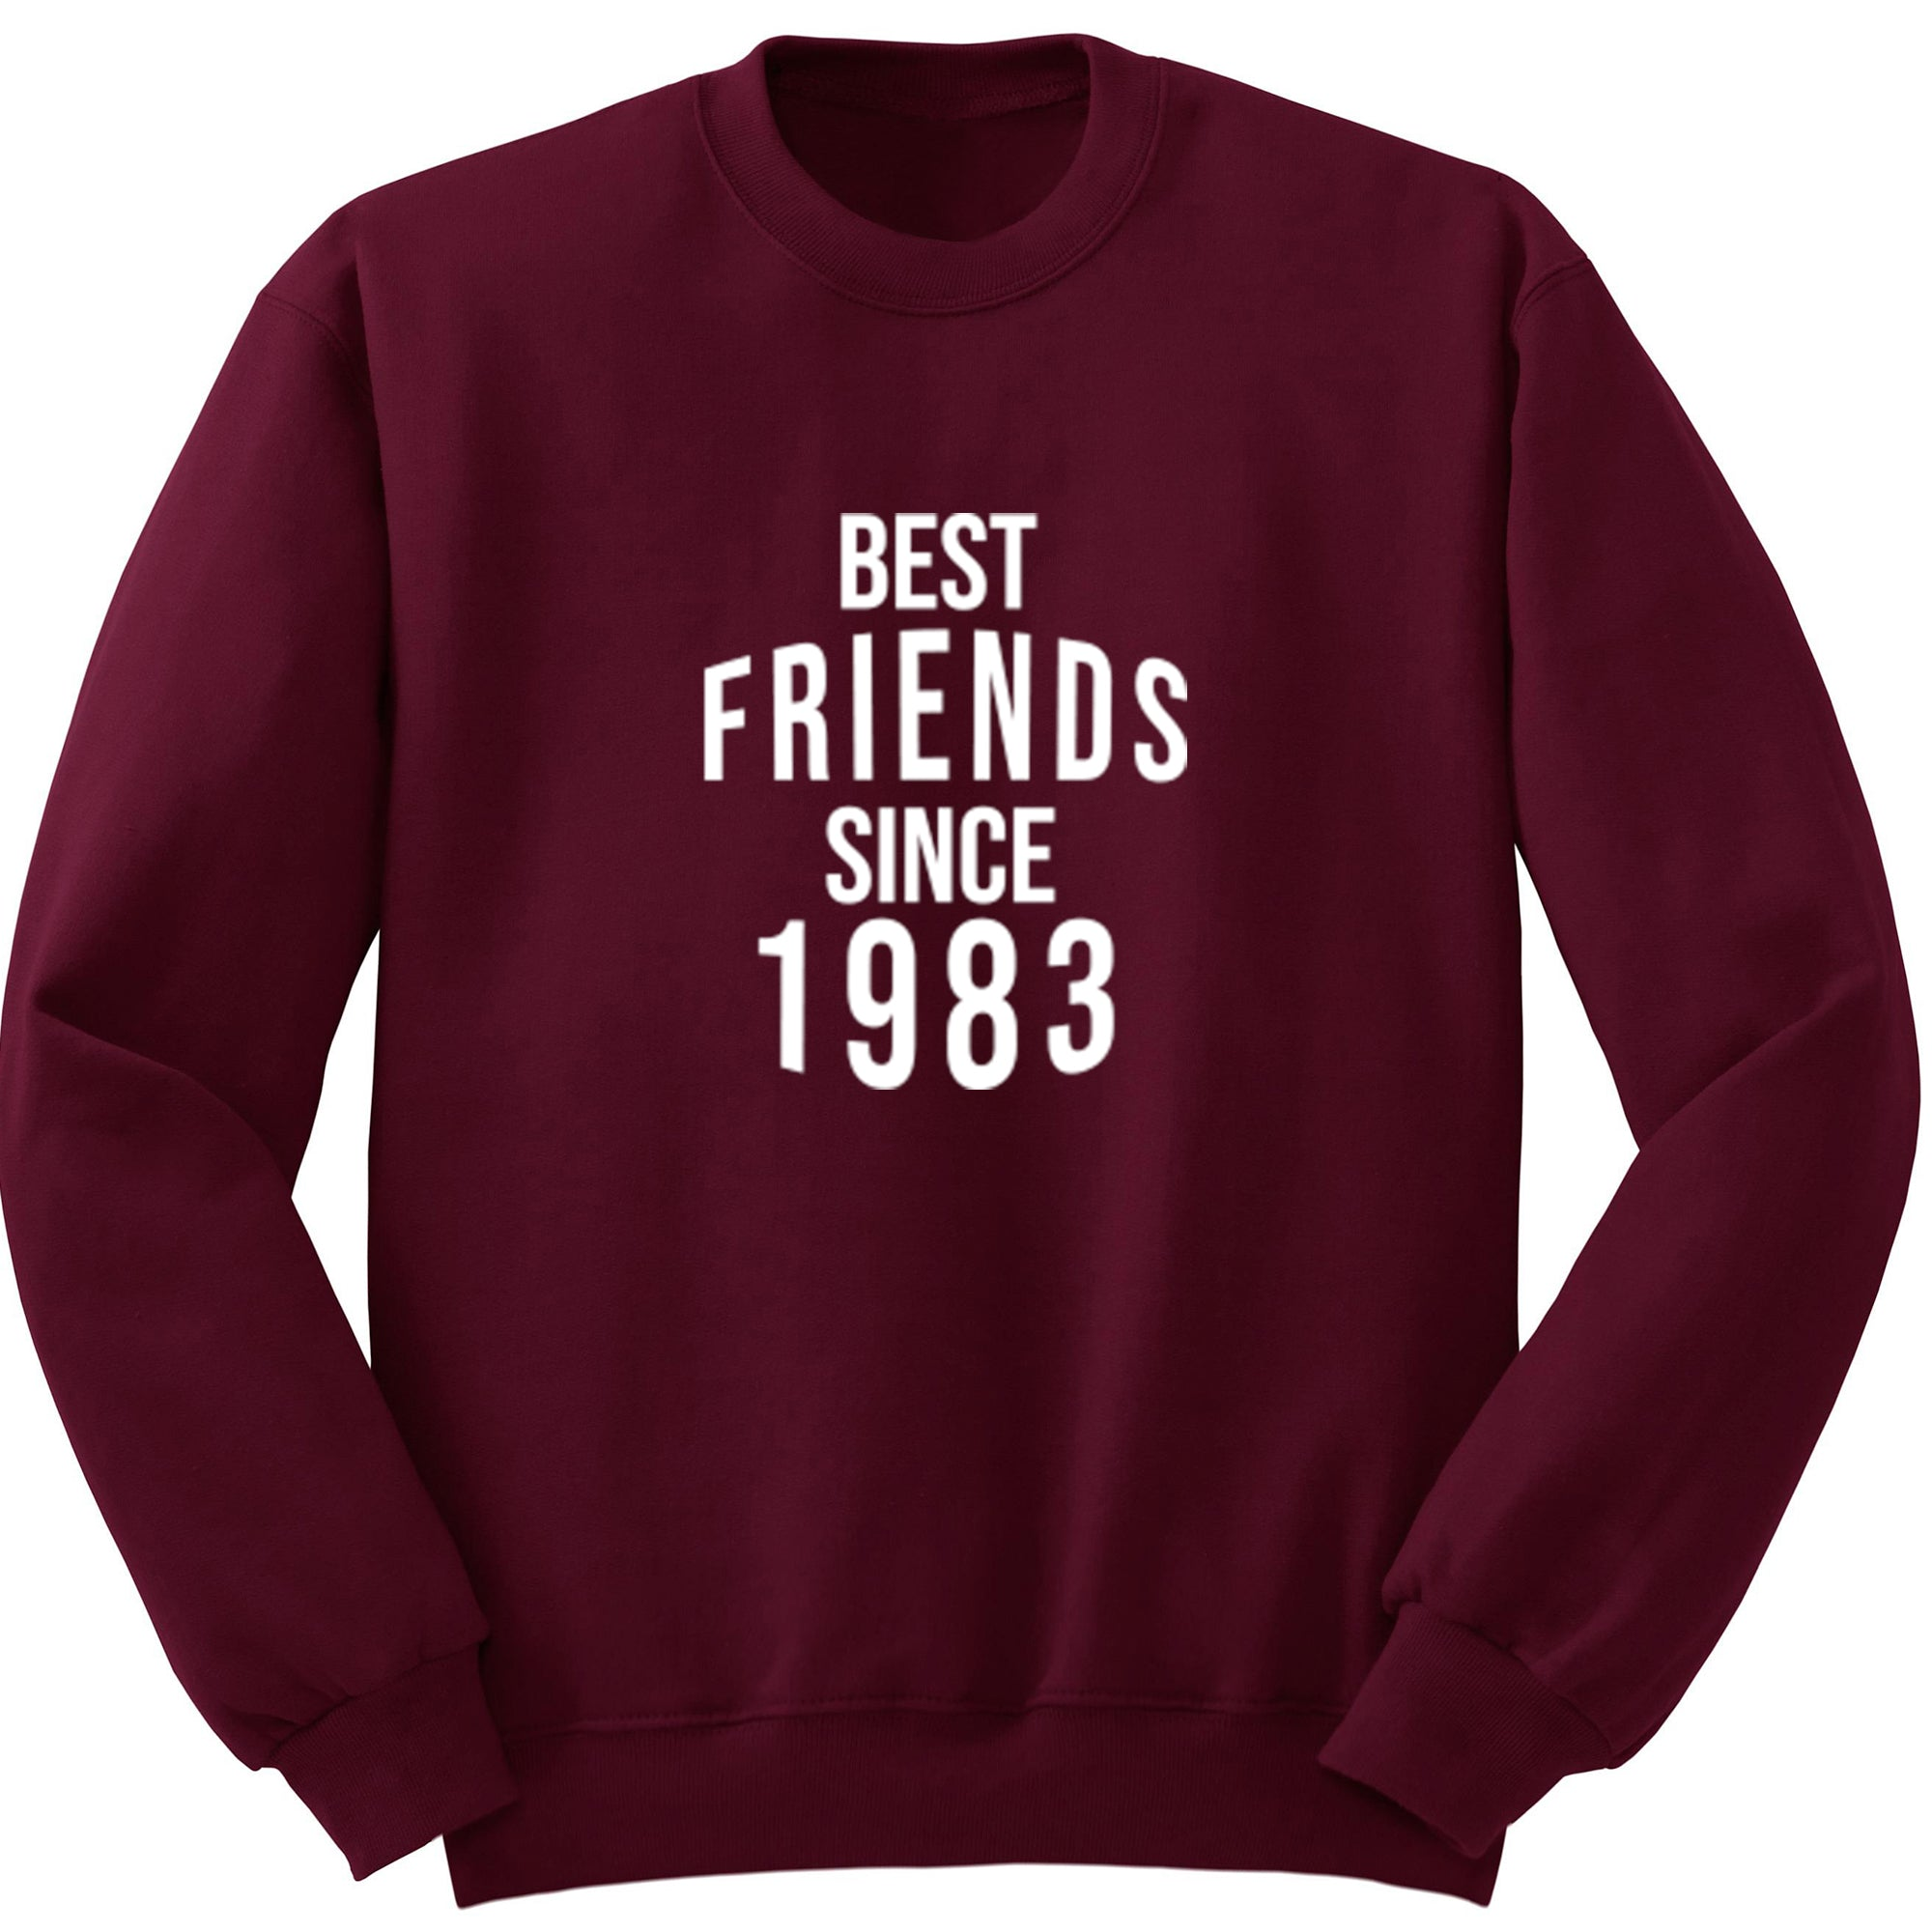 Best Friends Since 1983 Unisex Jumper S0562 - Illustrated Identity Ltd.